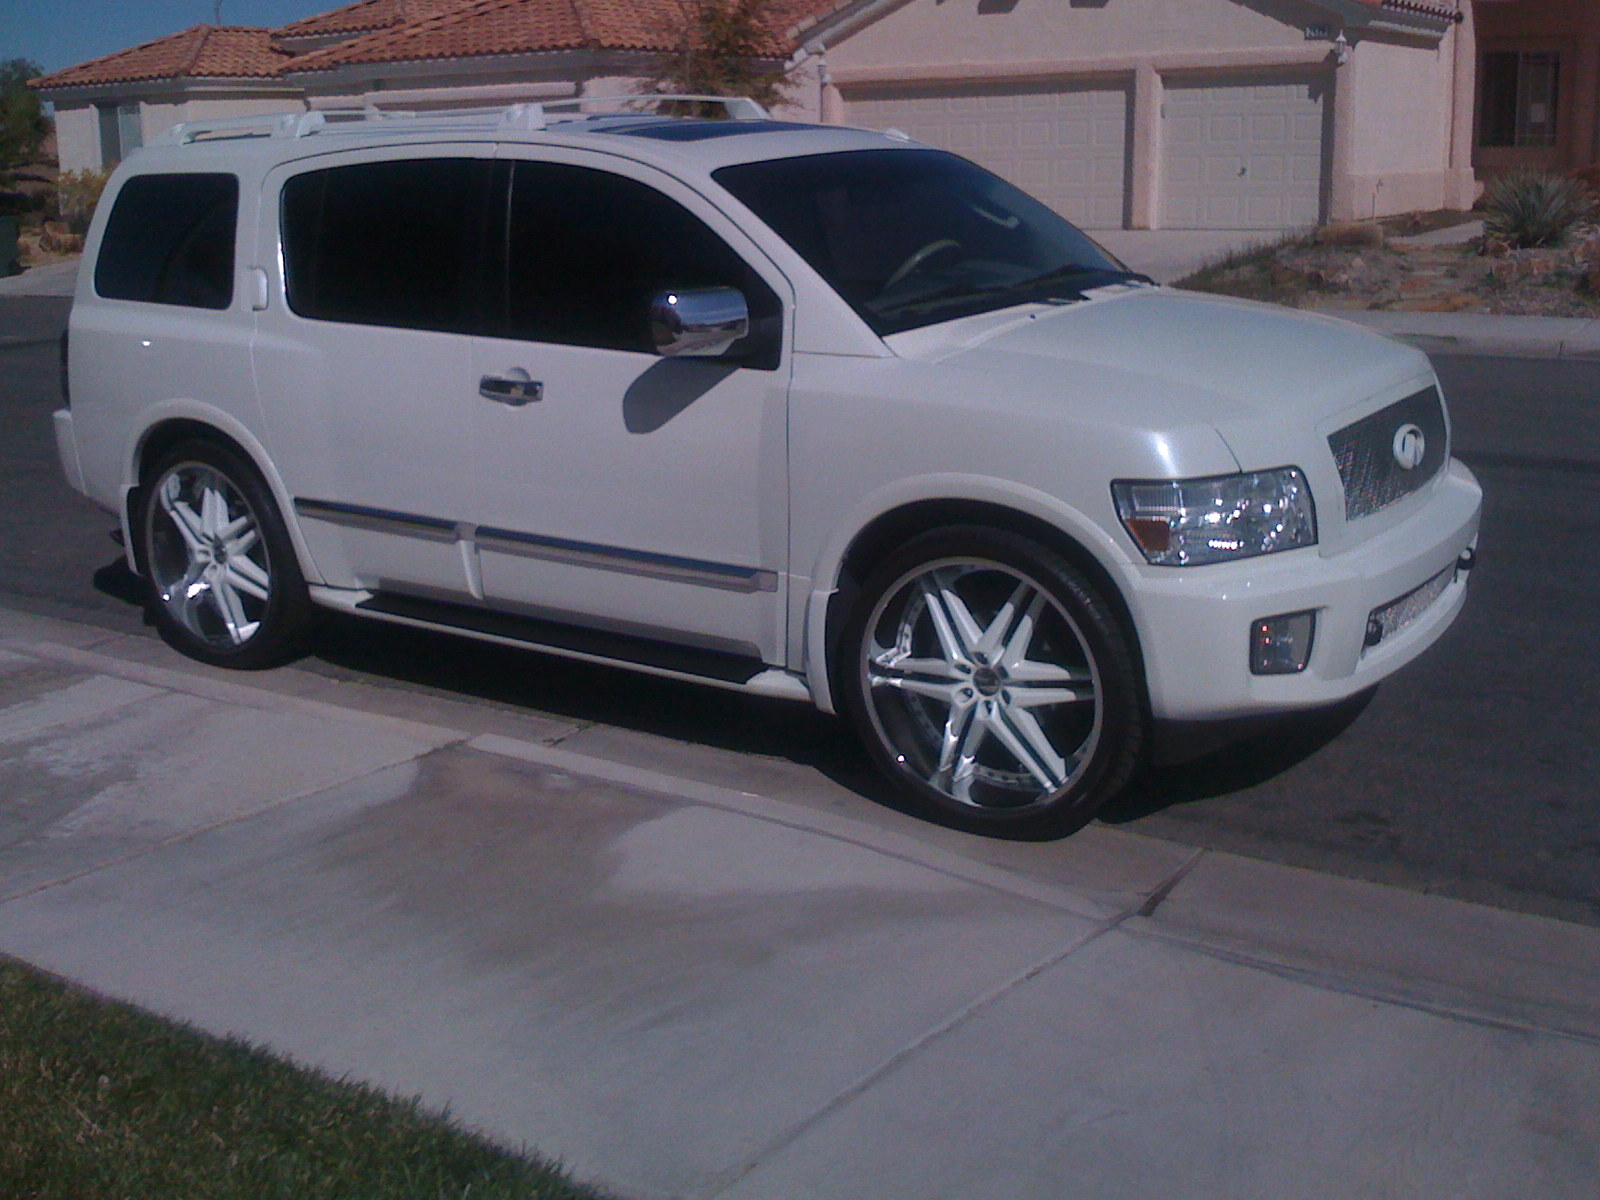 2005 infiniti qx56 white image collections hd cars wallpaper 2005 infiniti qx56 white gallery hd cars wallpaper 2005 infiniti qx56 white choice image hd cars vanachro Choice Image